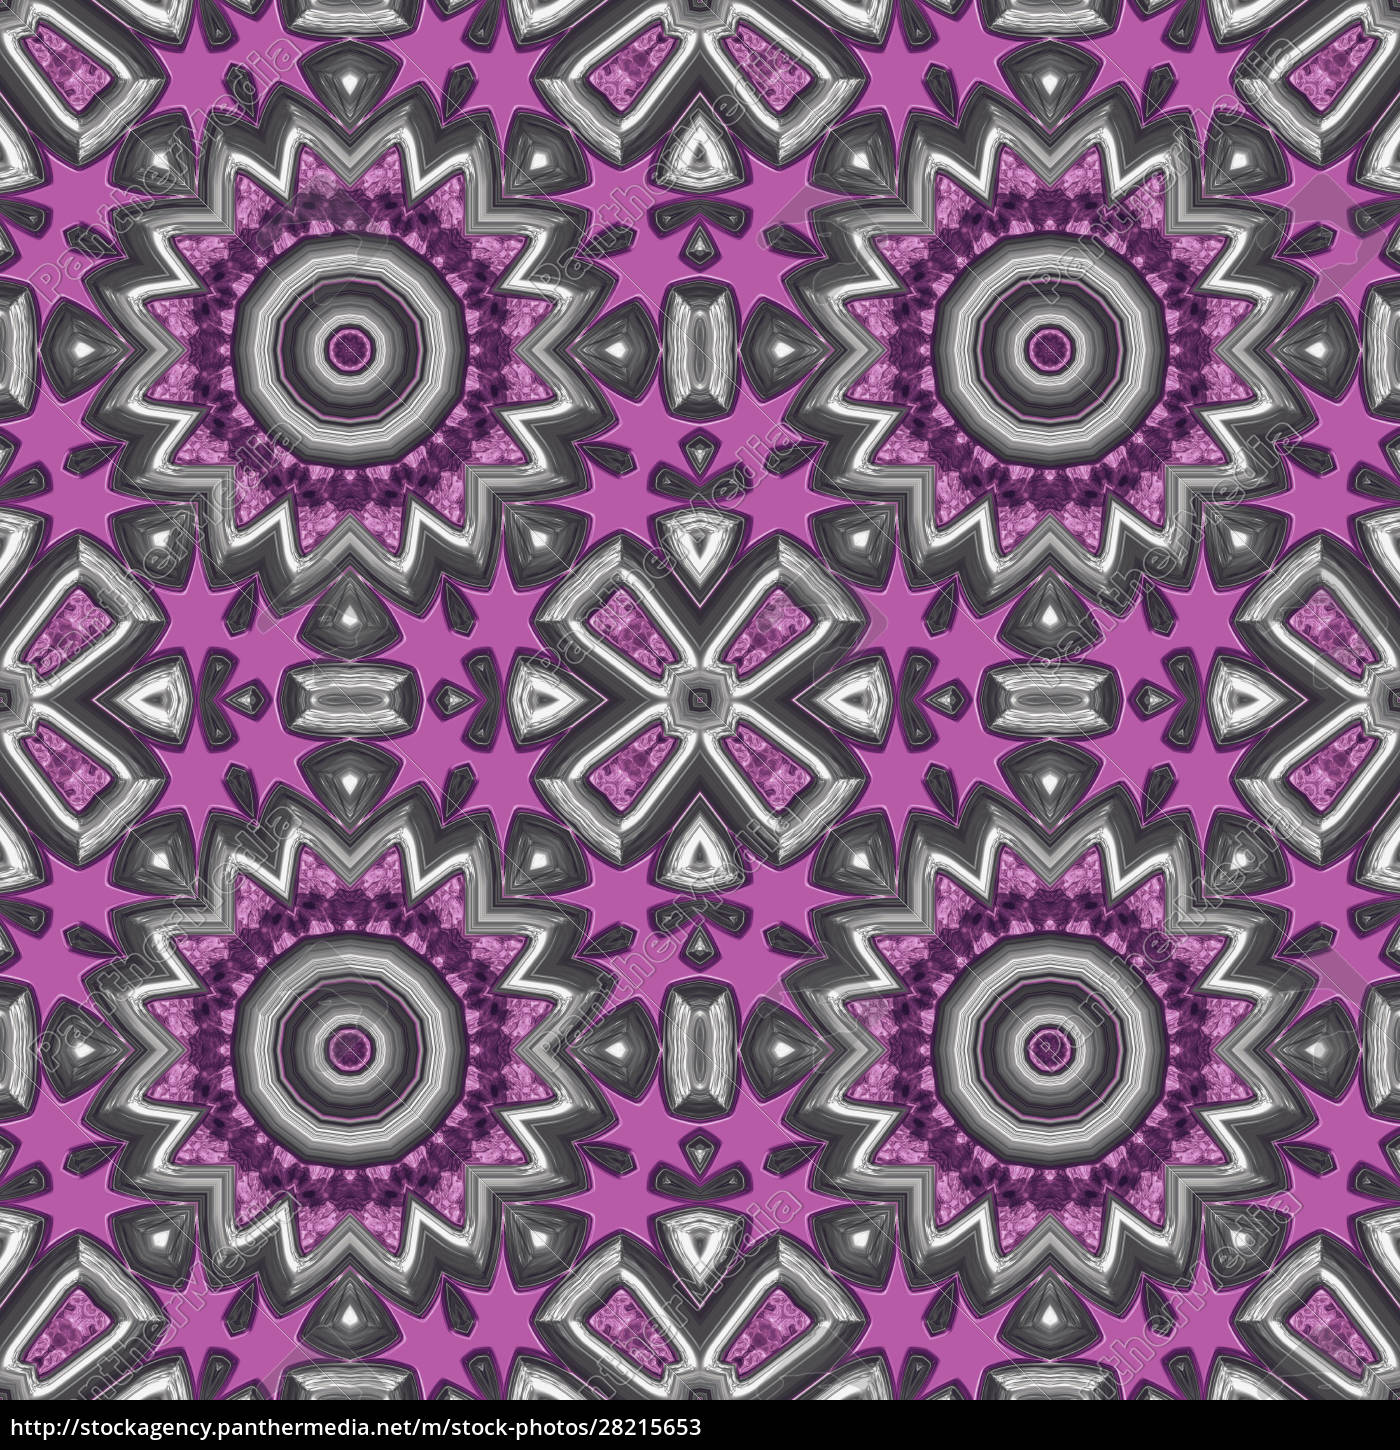 pink, seamless, repeating, pattern, tile - 28215653